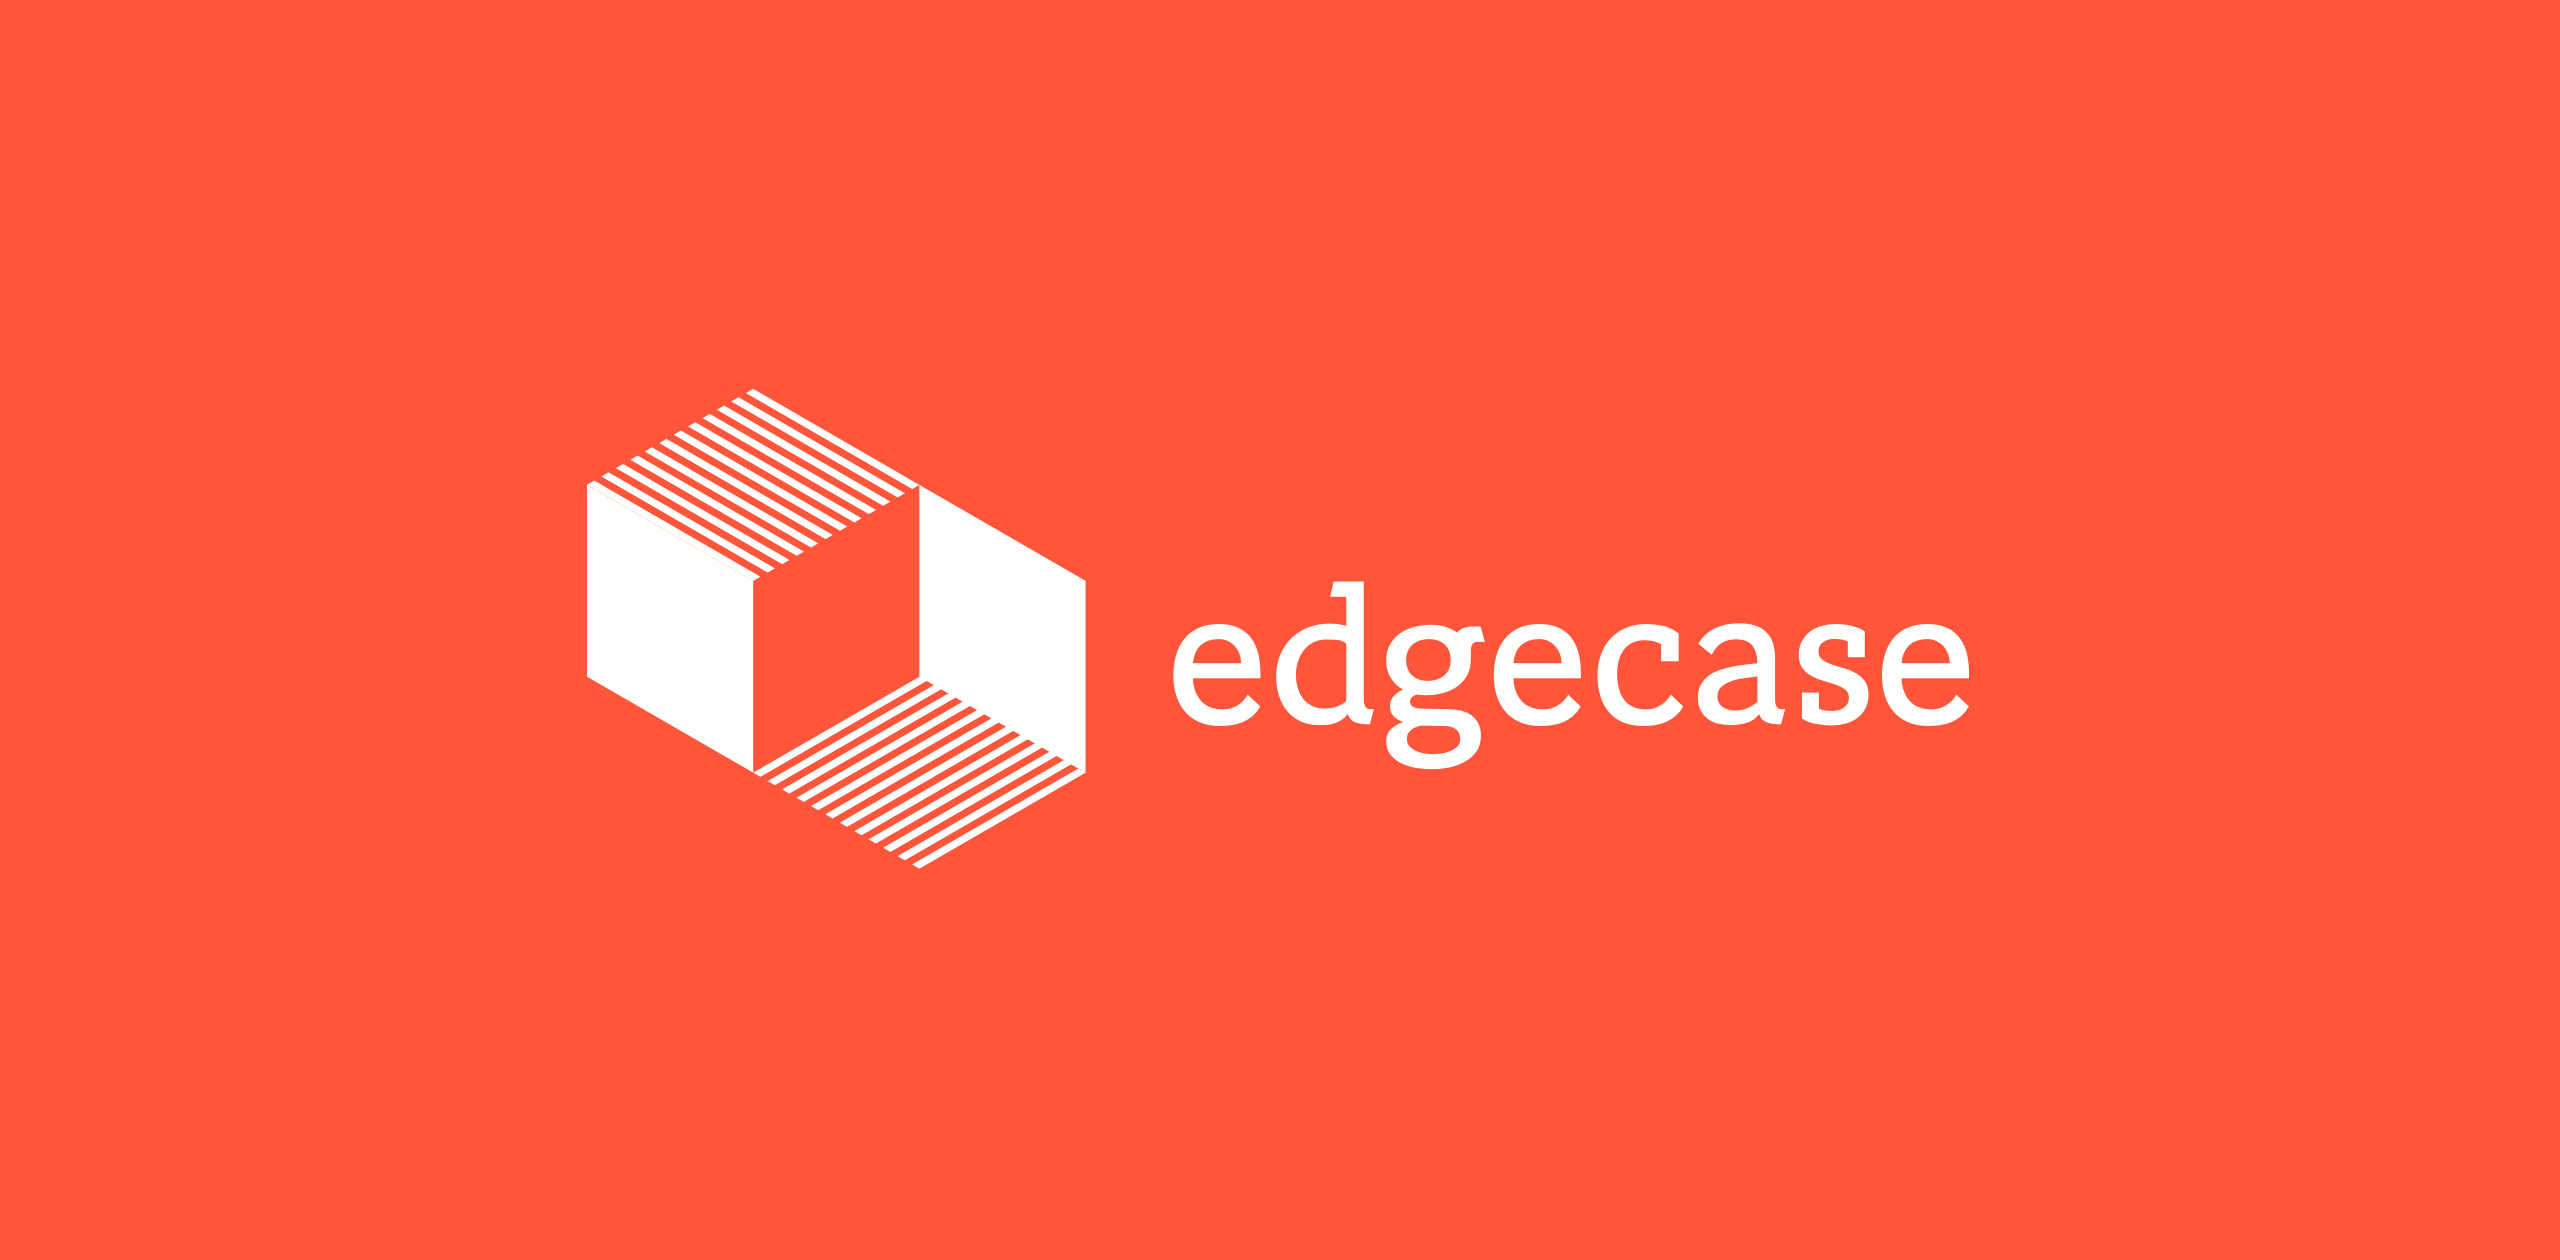 edgecase logo one color